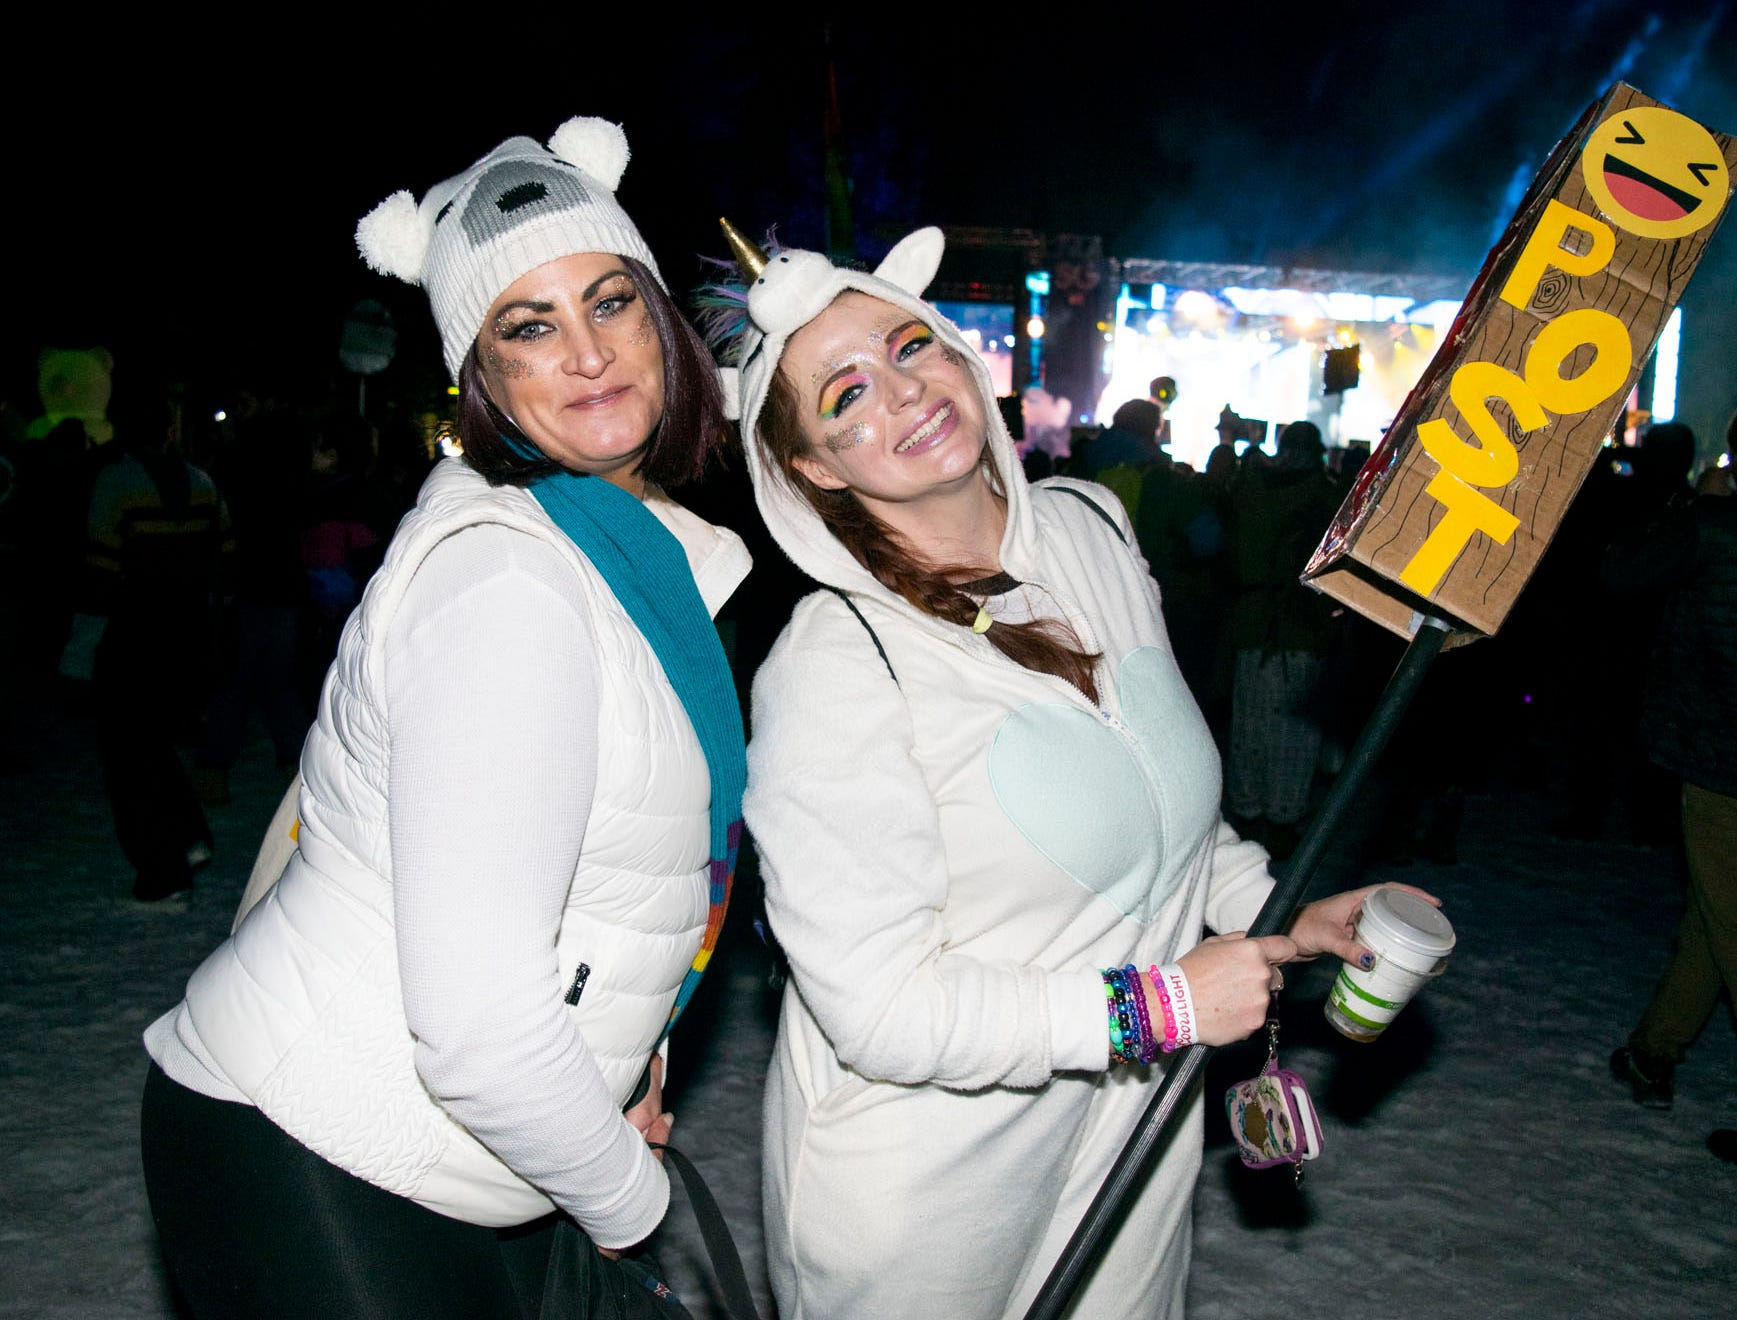 Rachel Carmichael and Tara Mills attend the Snowglobe Music Festival on Saturday, Dec. 29, 2018. South Lake Tahoe, Calif.